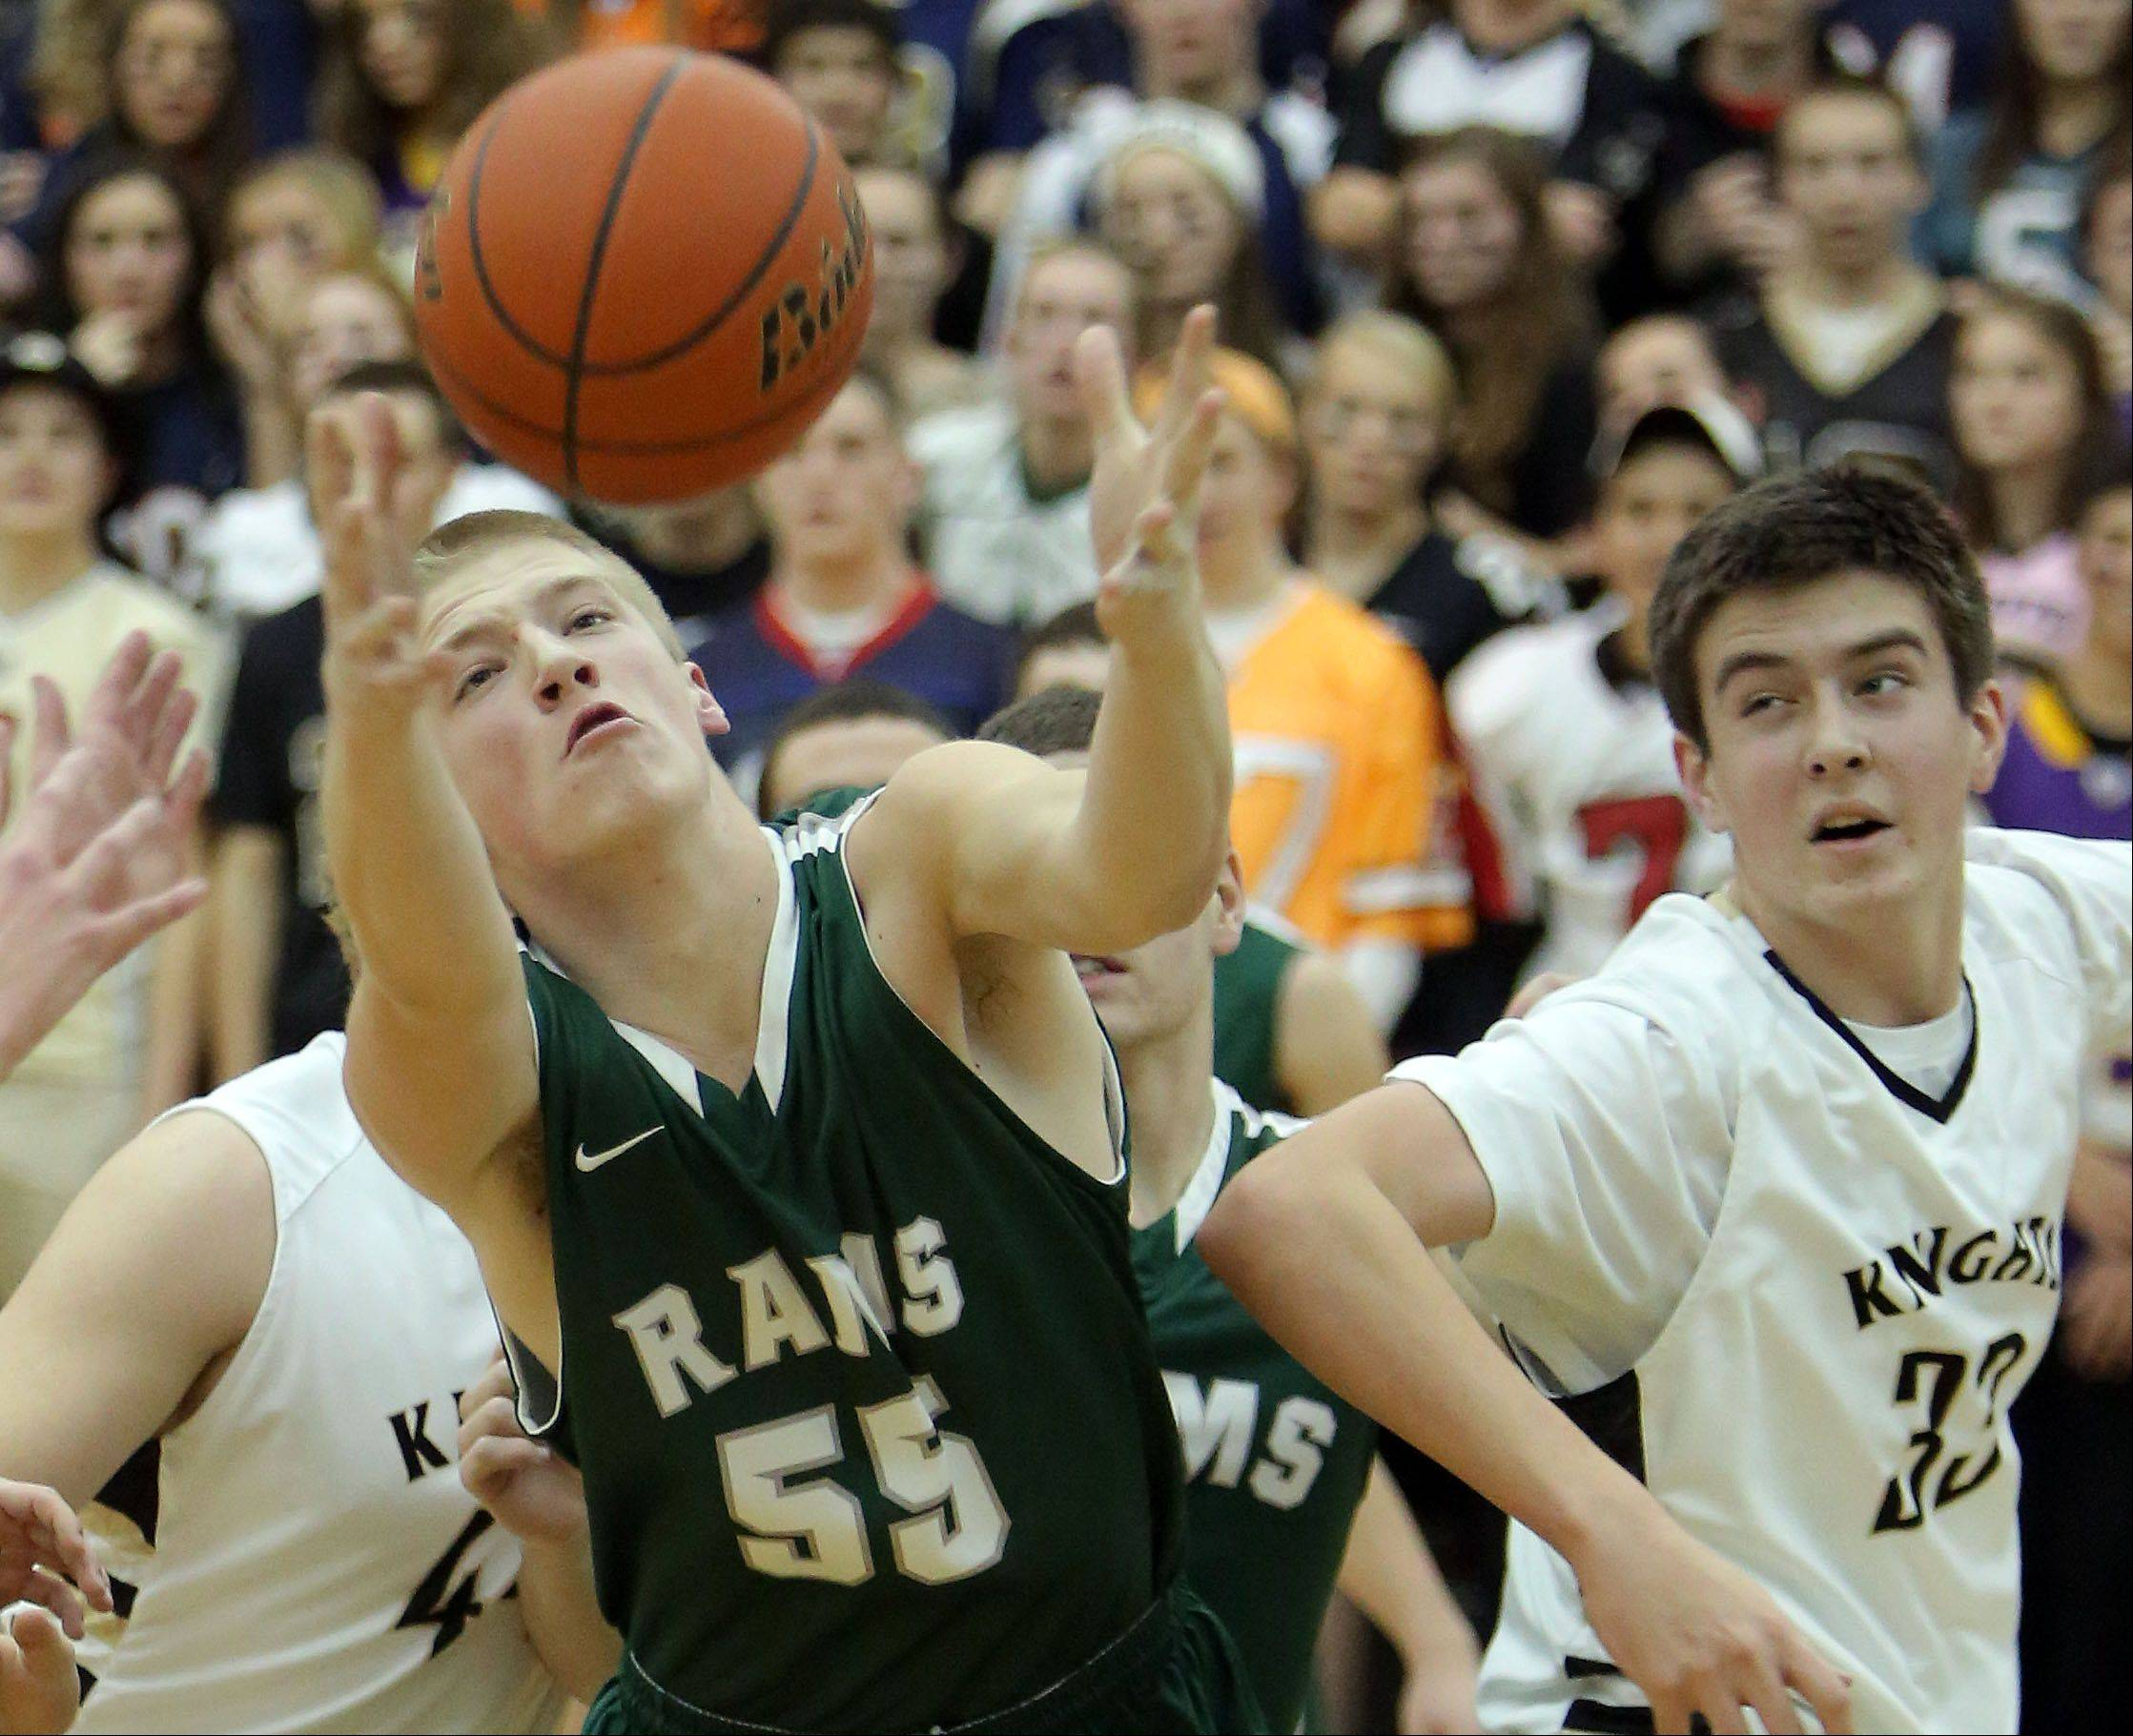 Grayslake Central's Jack Beckman, left, battles for a rebound with Grayslake North's Aiden Einloth.